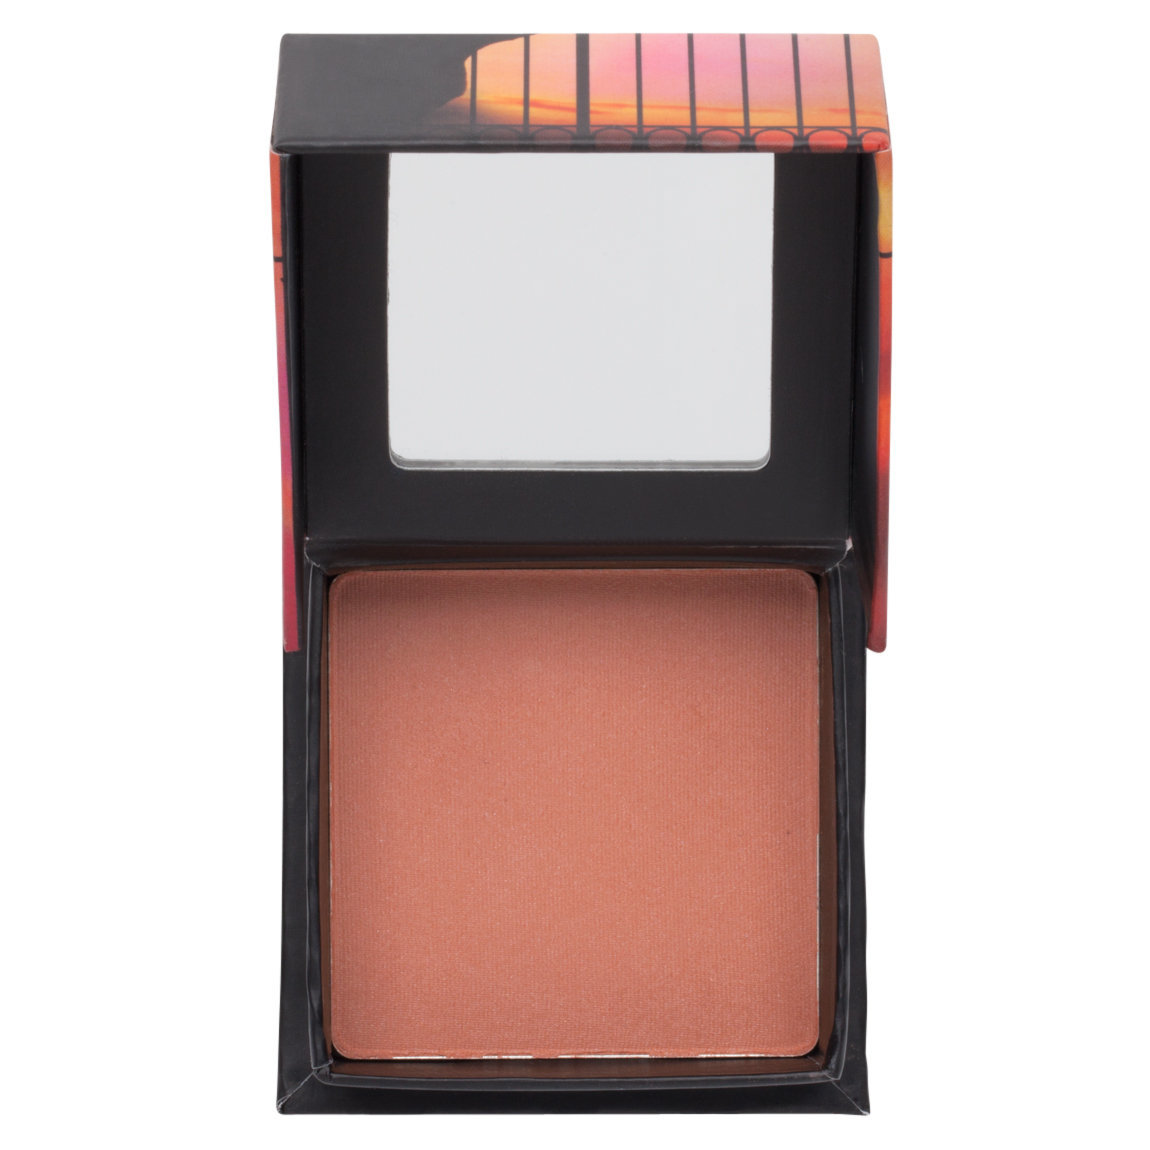 Benefit Cosmetics Dallas Powder Blush product smear.